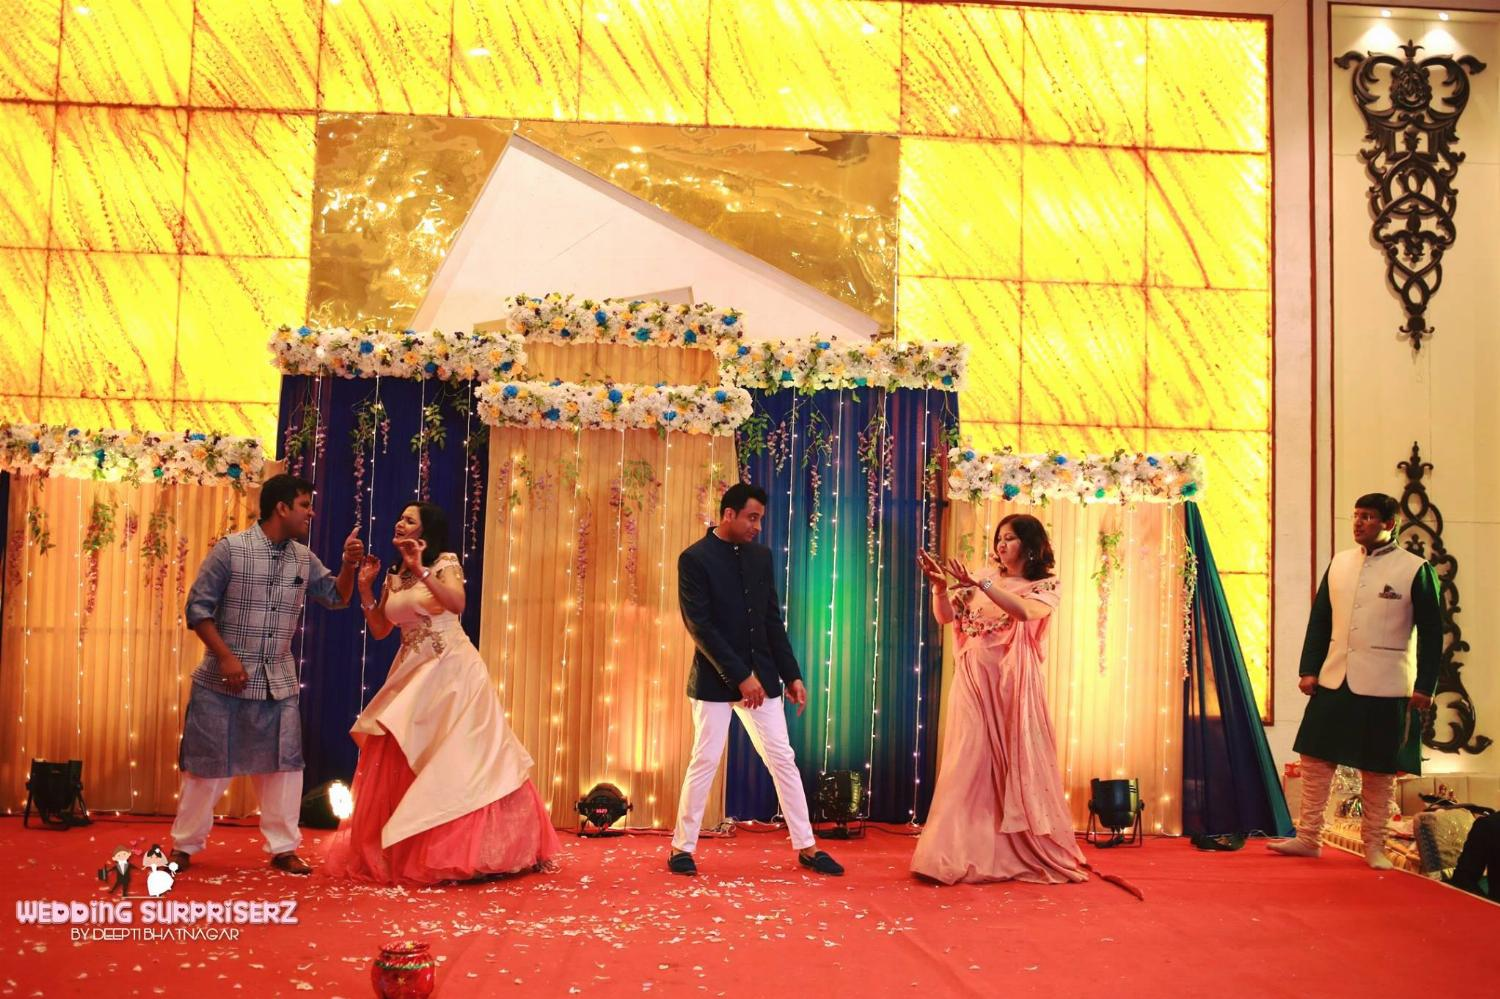 Portfolio - Wedding Surpriserz by Deepti Bhatnagar